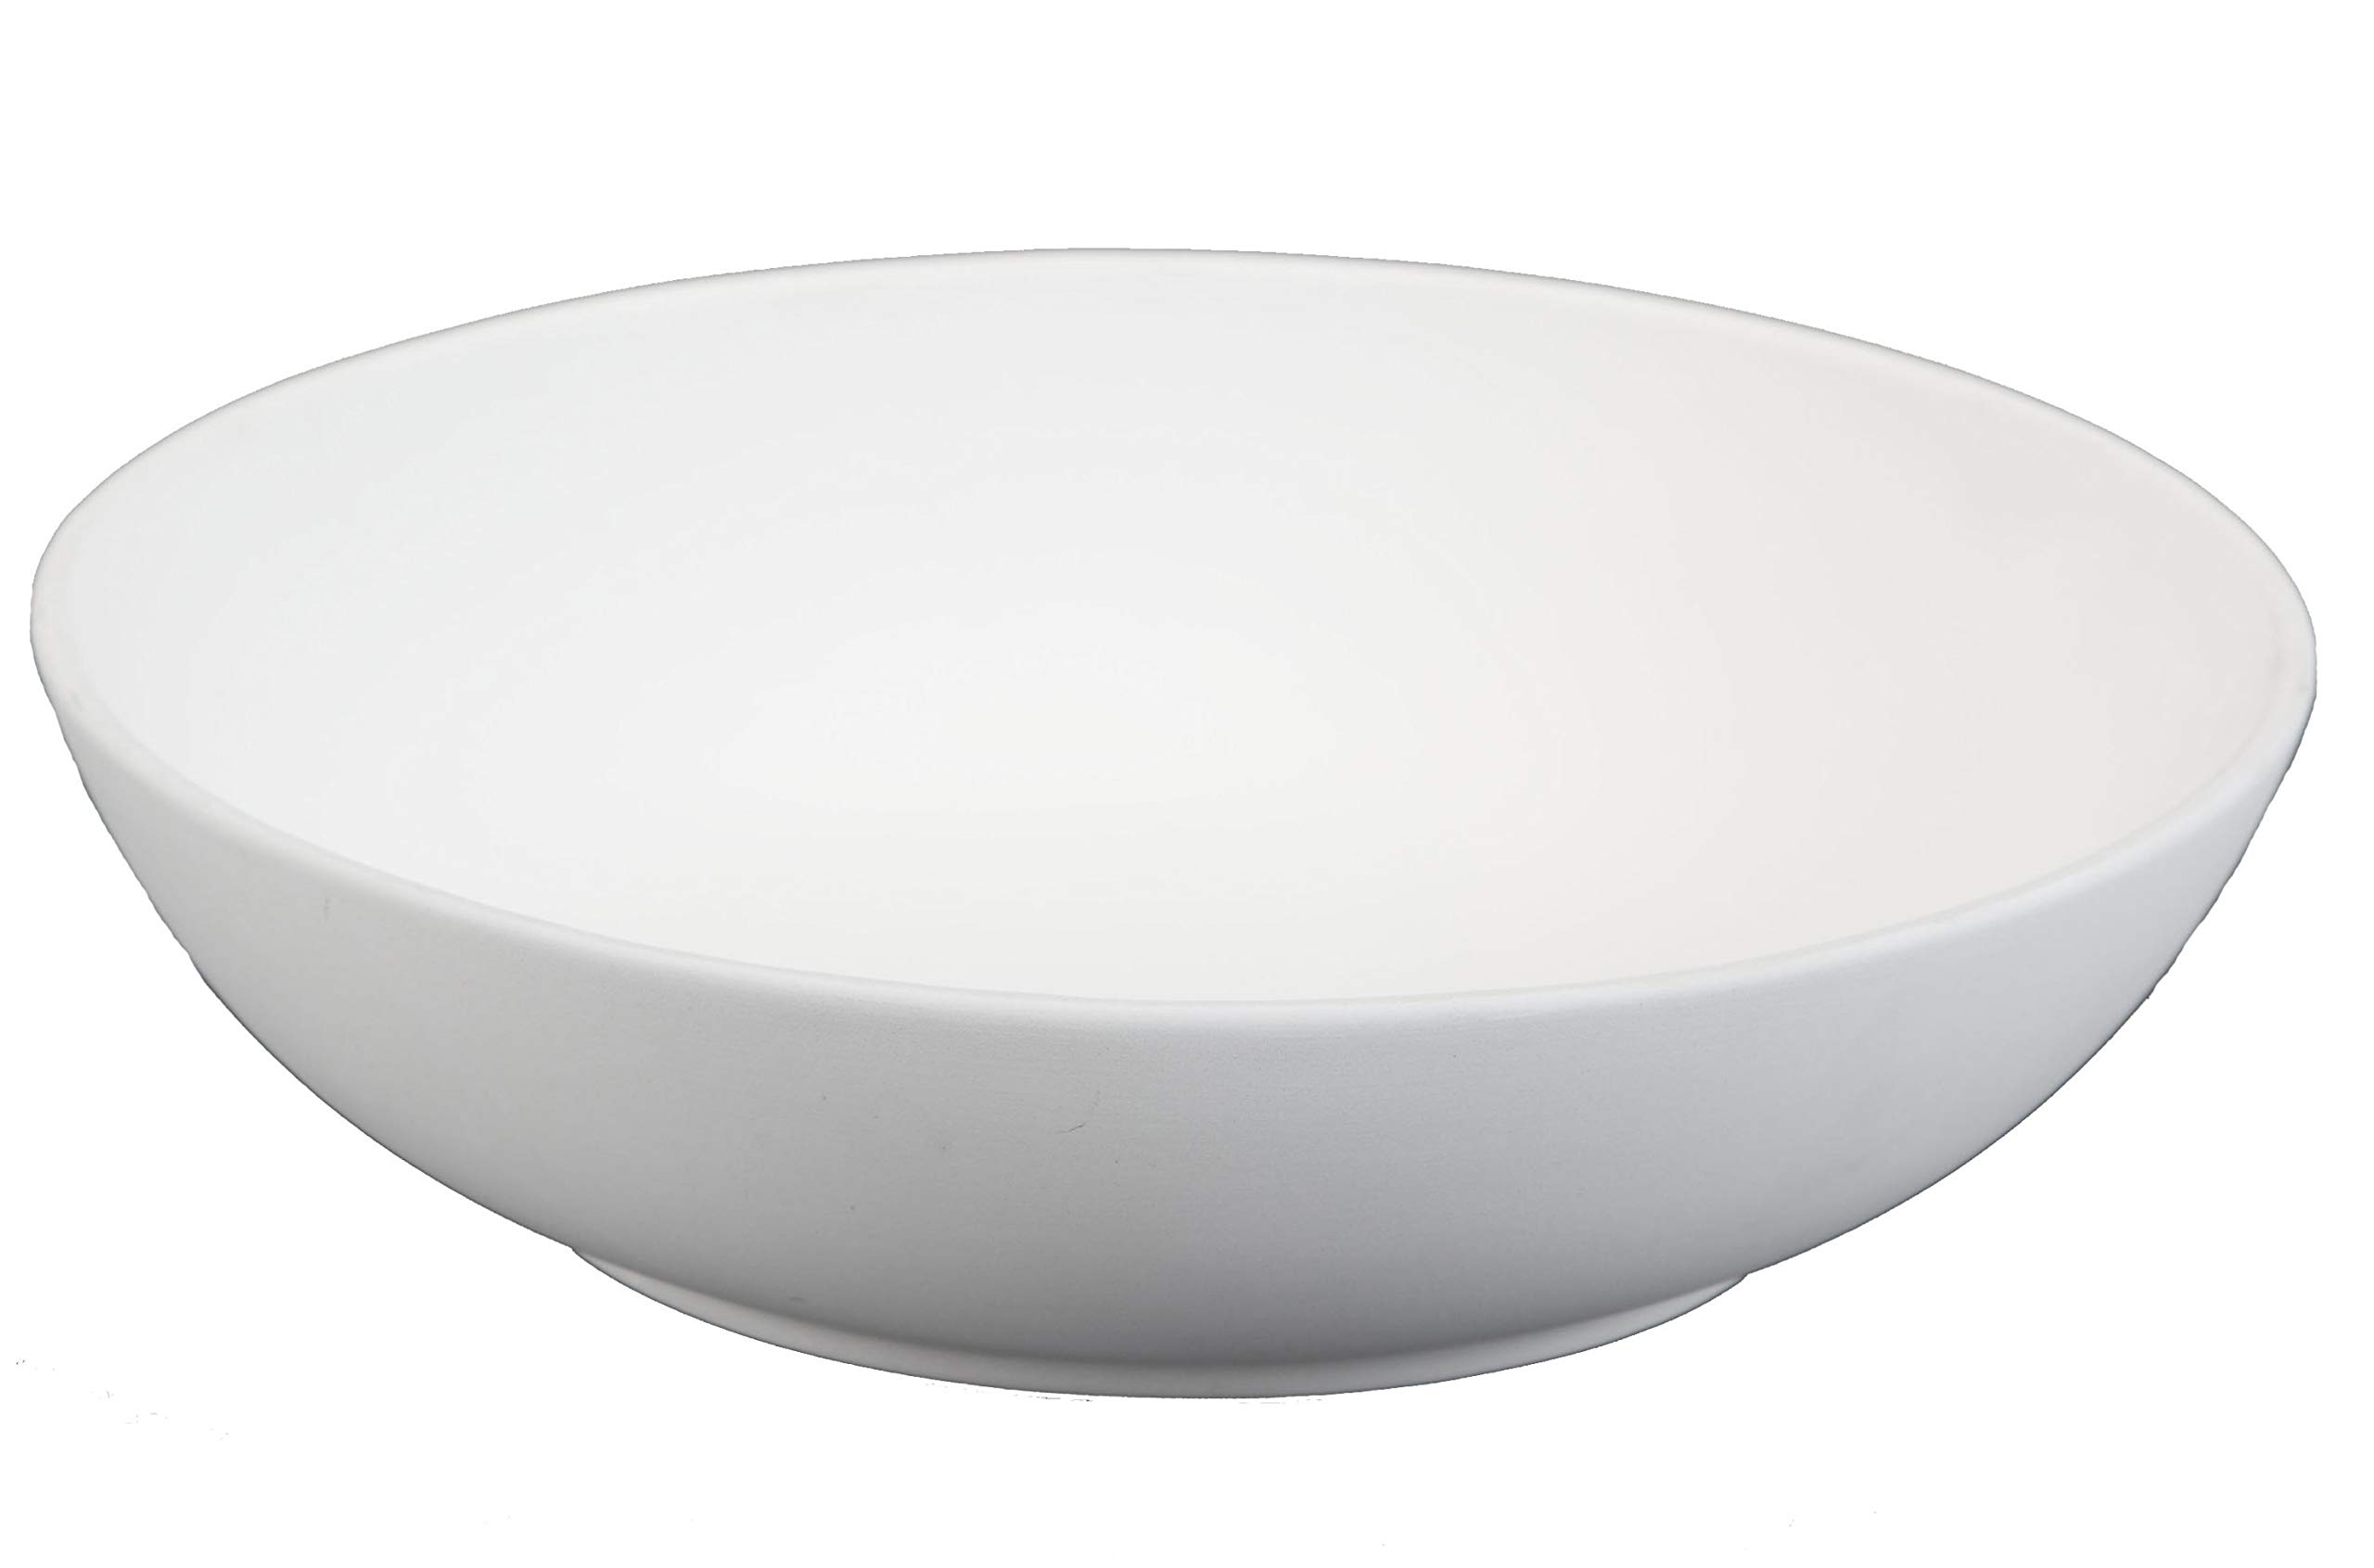 Creative Hobbies 8 Inch Coupe Pasta Bowls, Case of 6, Unfinished Ceramic Bisque, with How to Paint Your Own Pottery Booklet by Creative Hobbies (Image #1)